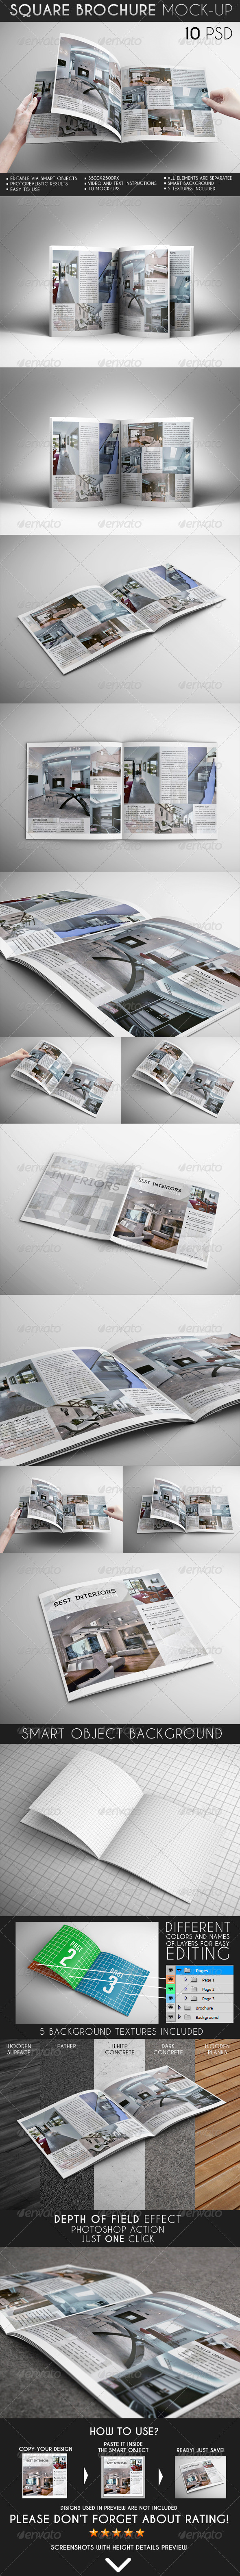 GraphicRiver Square Brochure Mock-Up 6838423